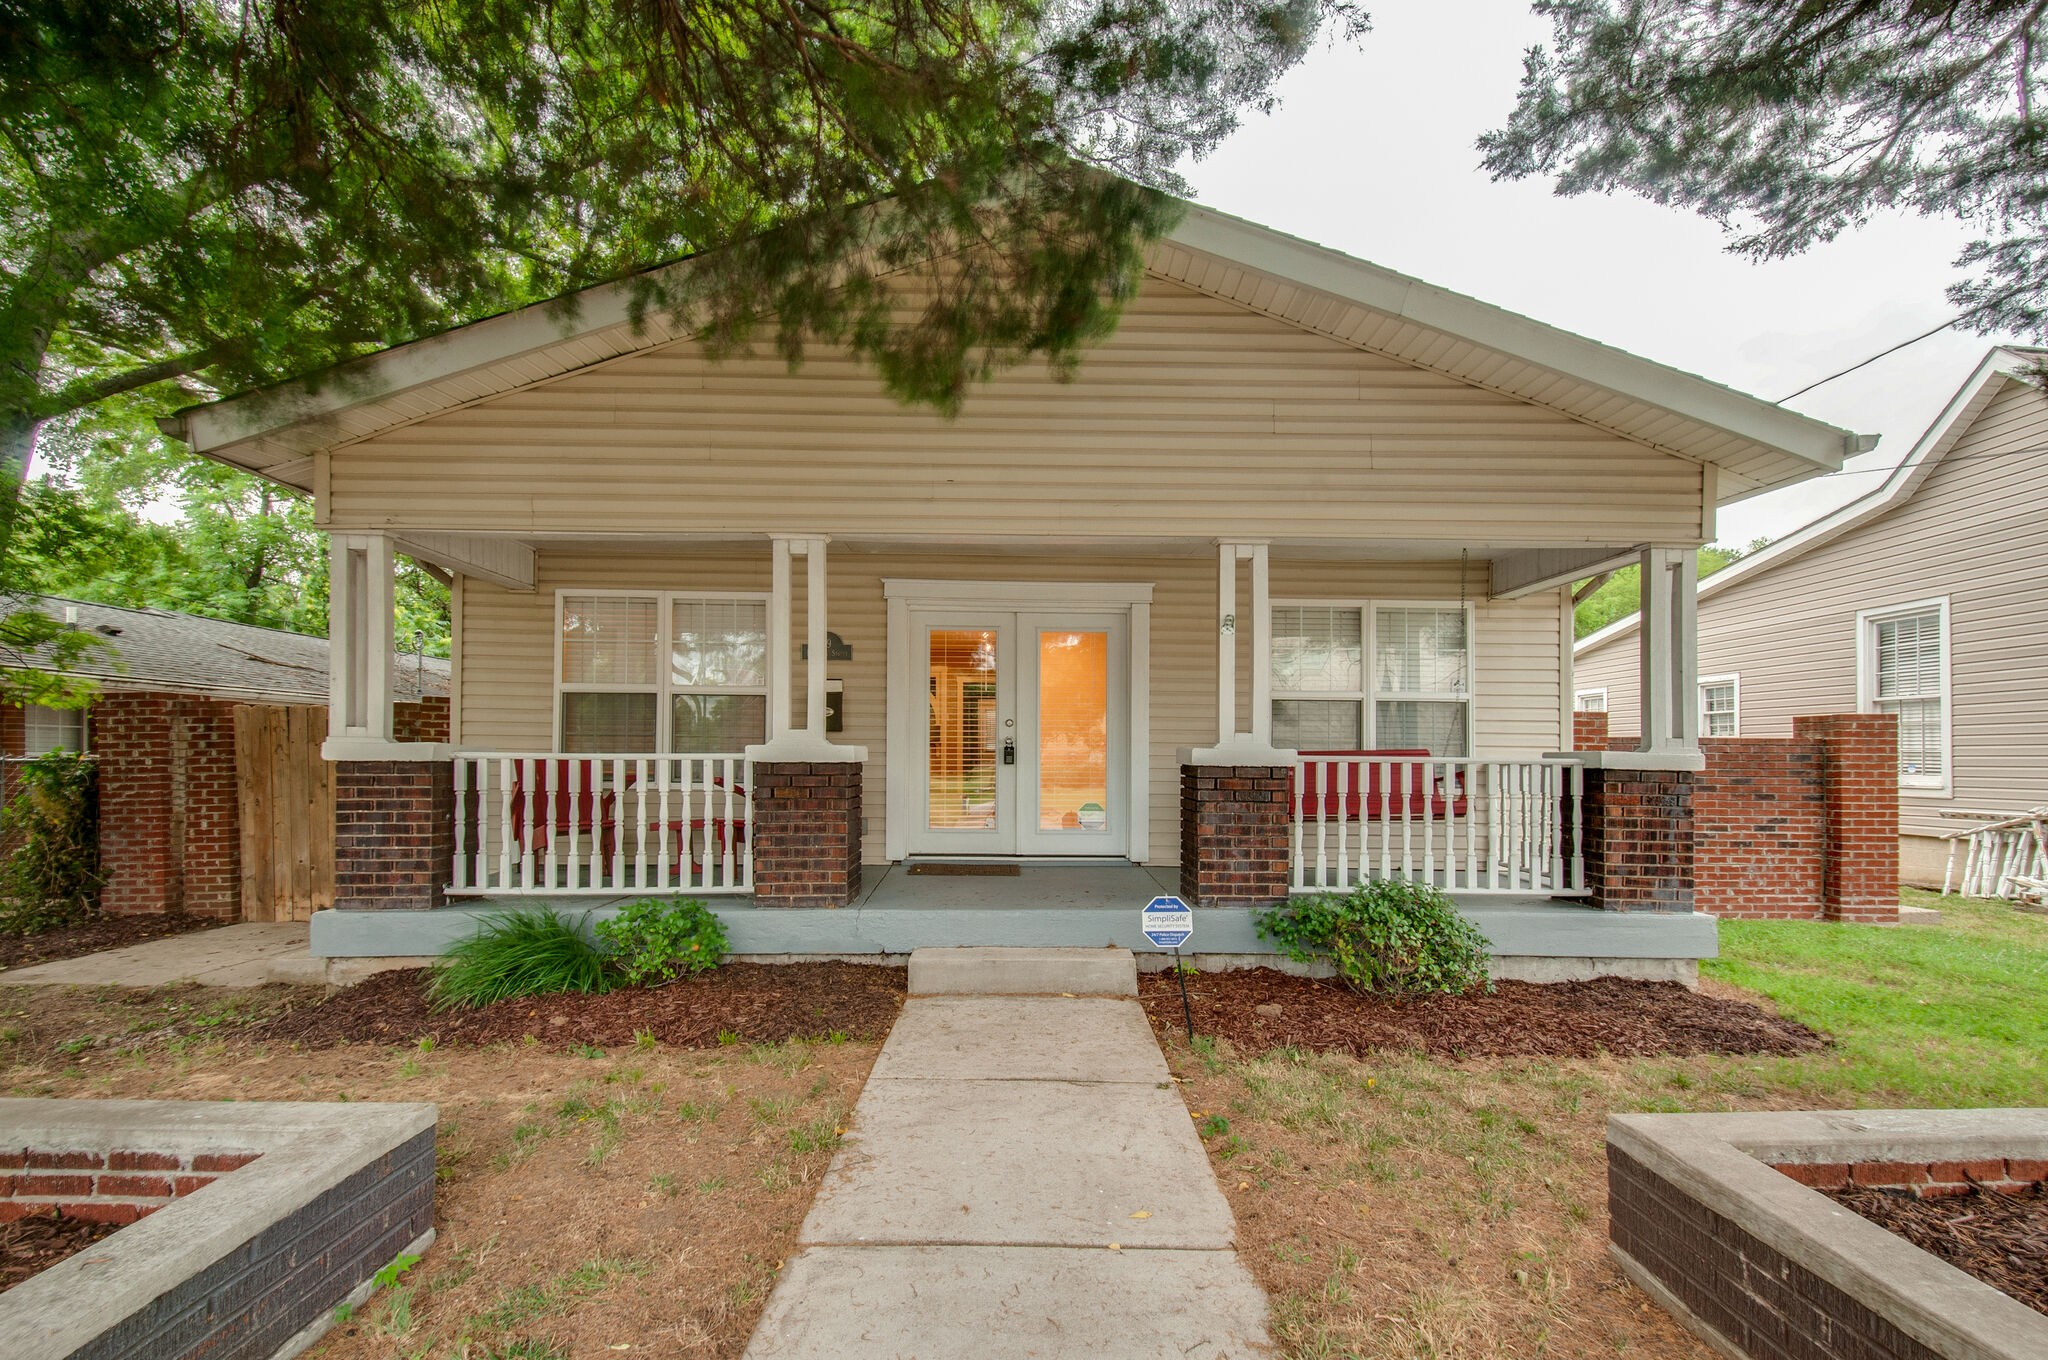 79 Donelson St Property Photo - Nashville, TN real estate listing